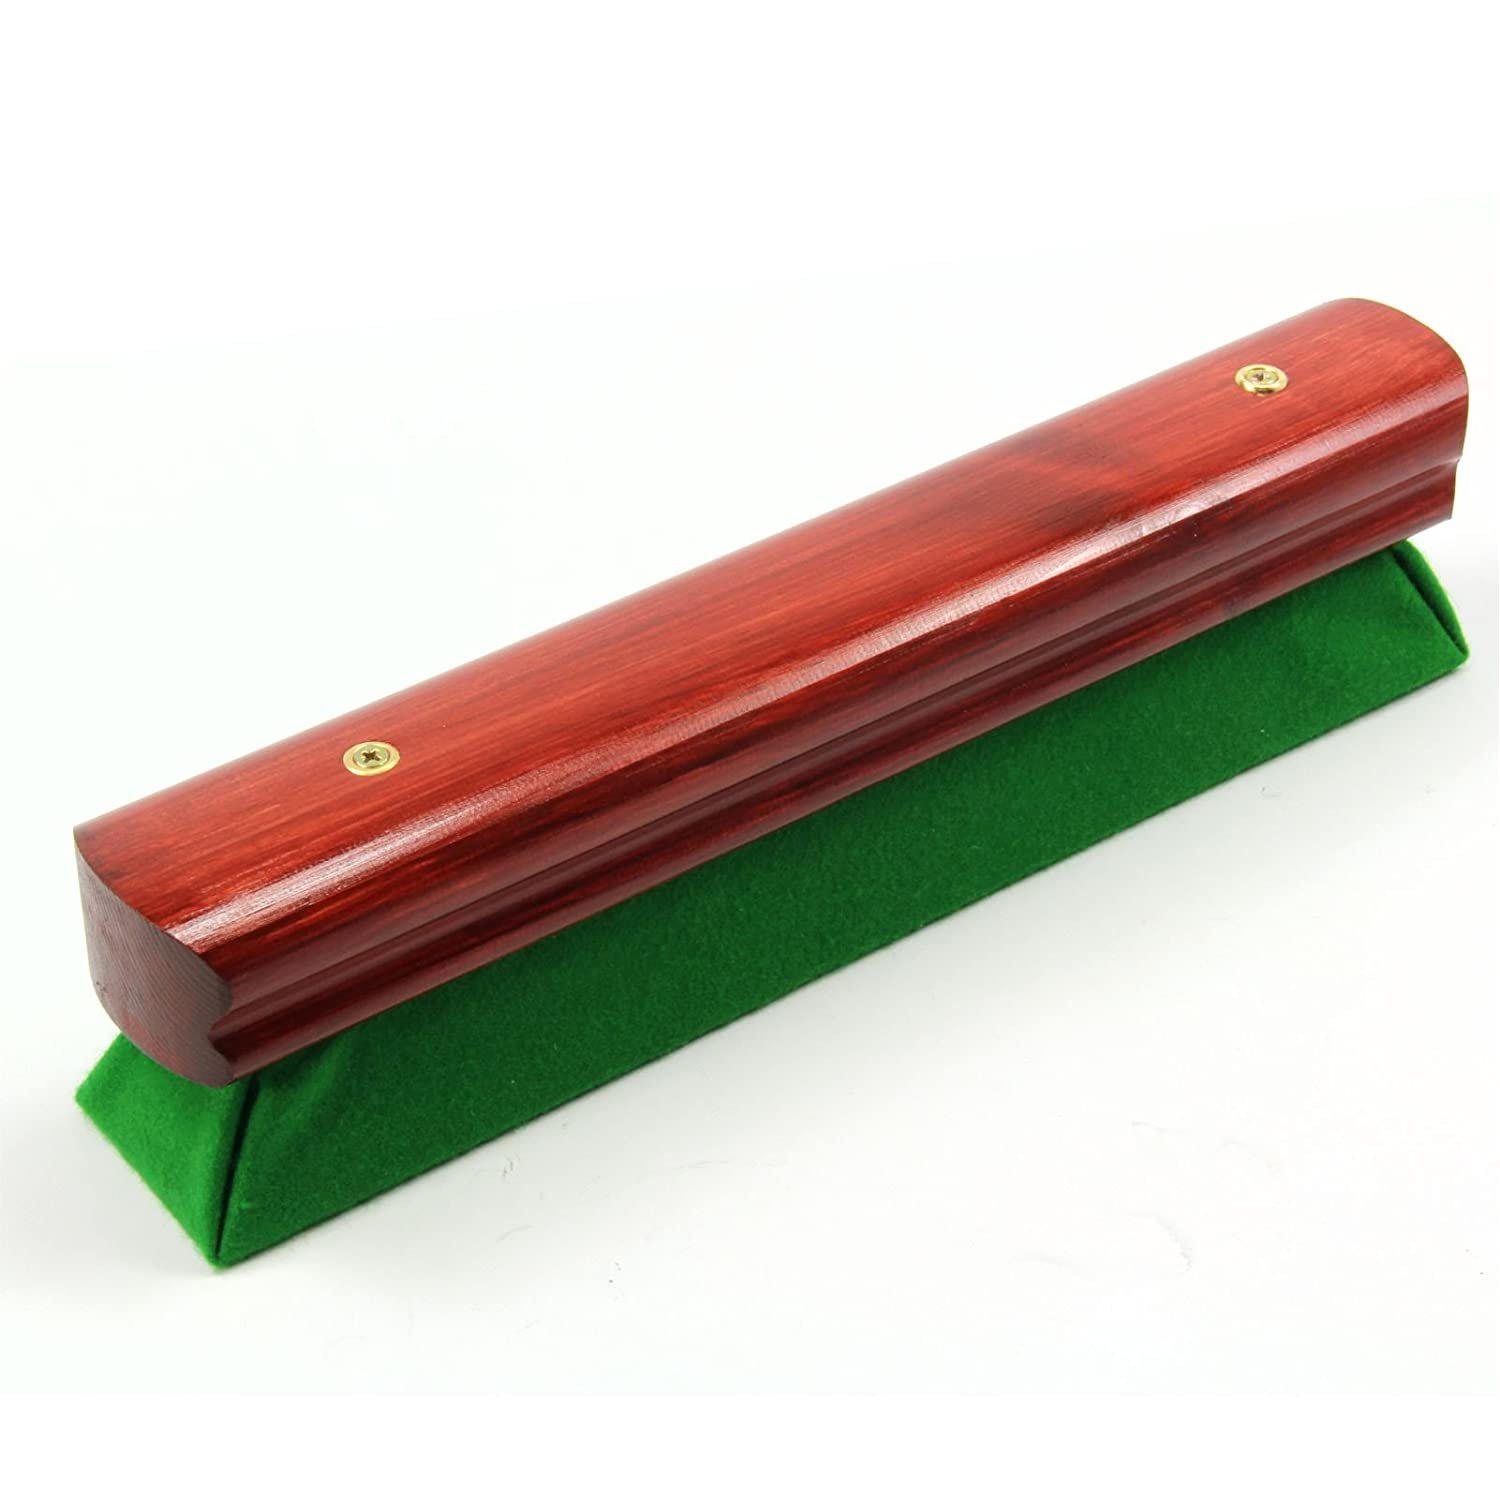 Handmade in the UK NAPPING BLOCK for Pool Snooker Billiards Tables Funky Chalk